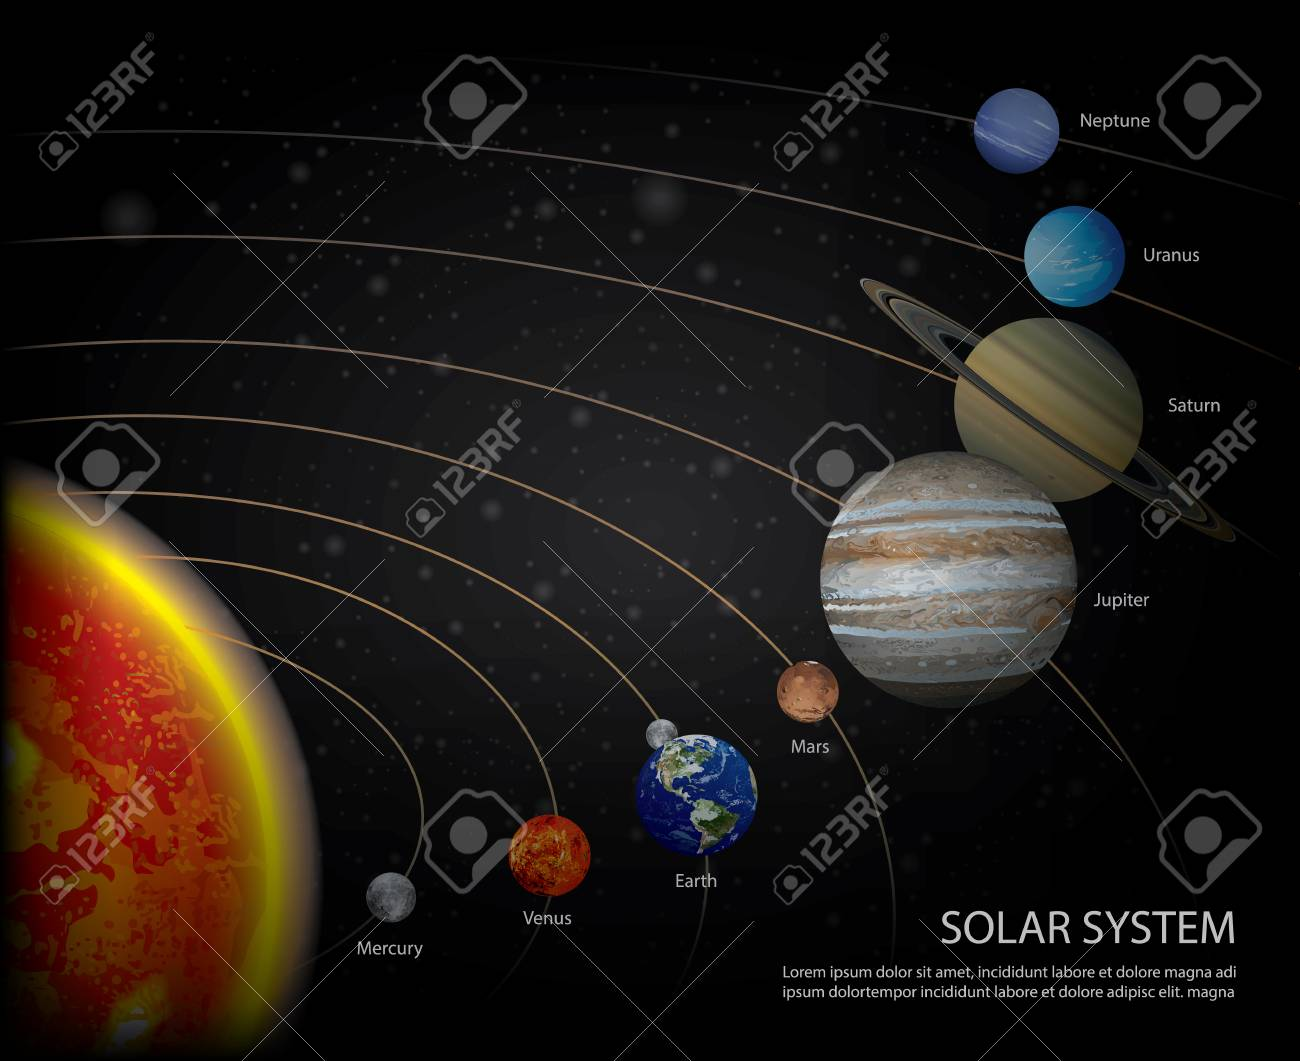 Solar System of our Planets Vector Illustration - 120411844